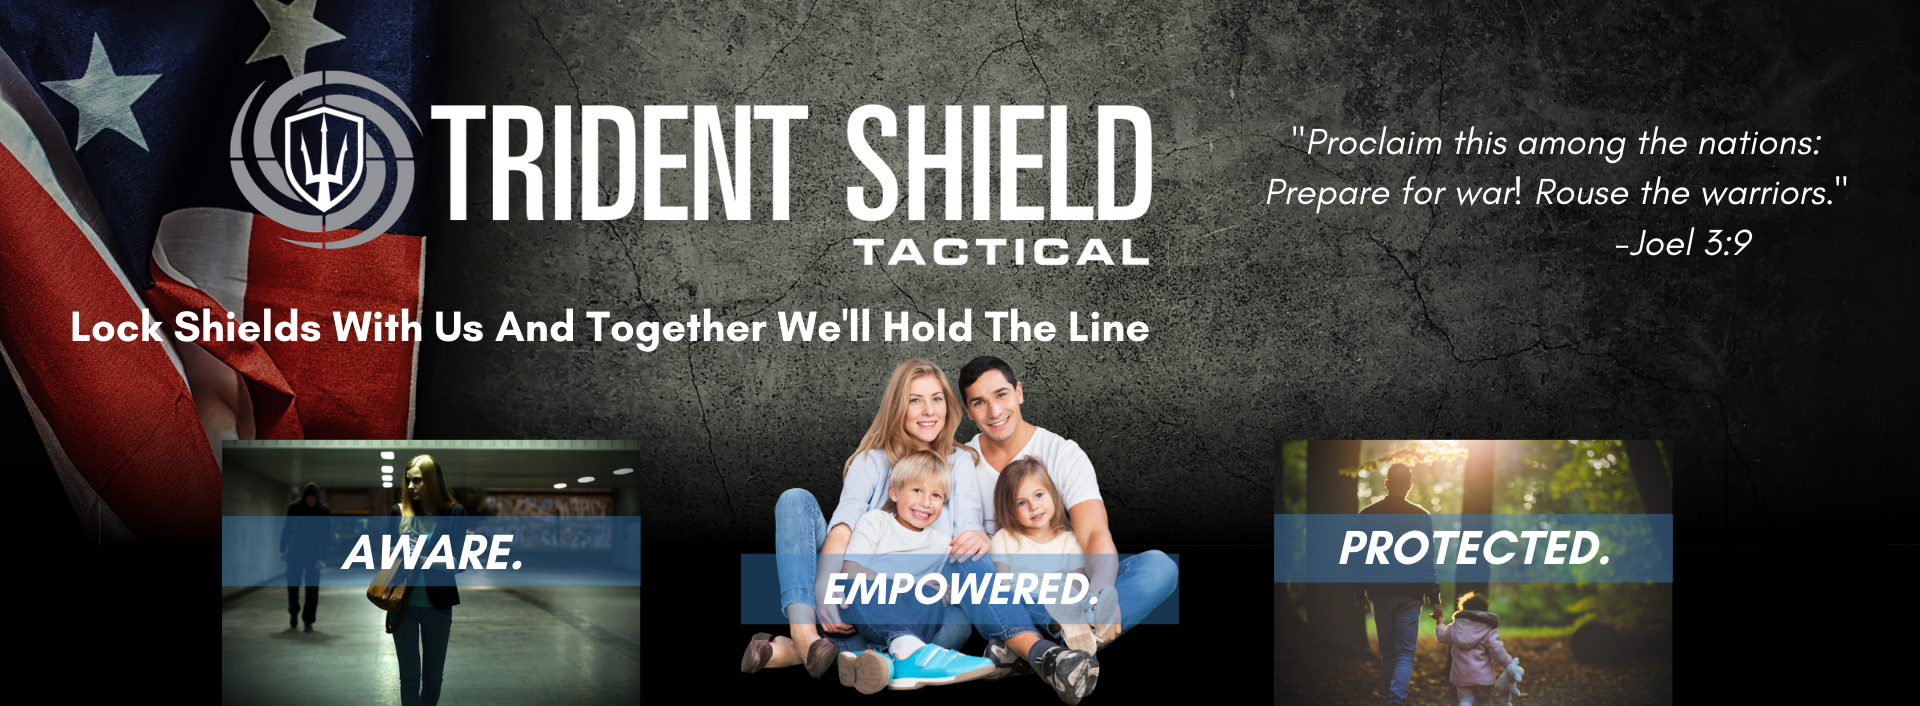 Trident Shield Tactical Banner9 (3)